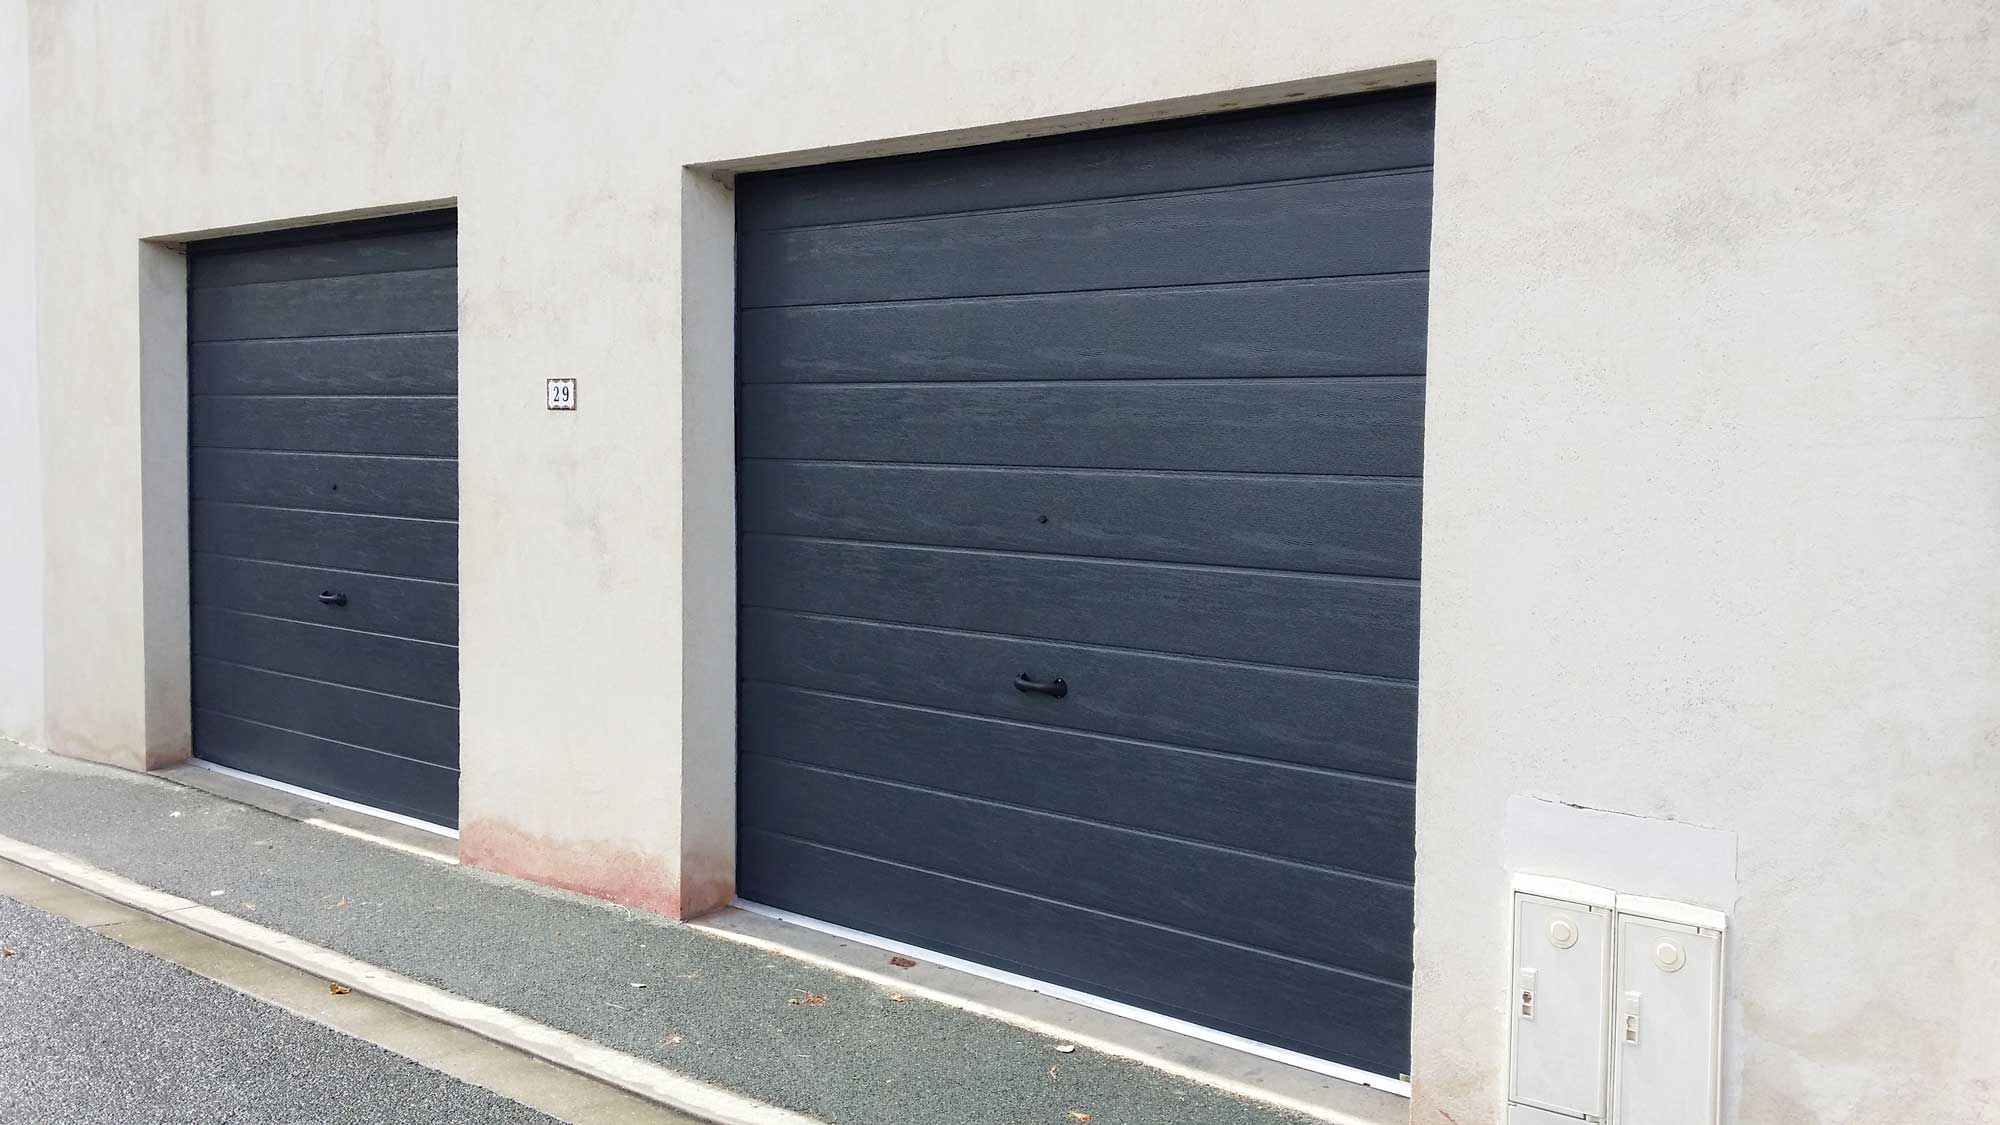 Pose de portes de garage sectionnelle 7016 sur mesure par for Porte de garage sectionnelle sur mesure hormann